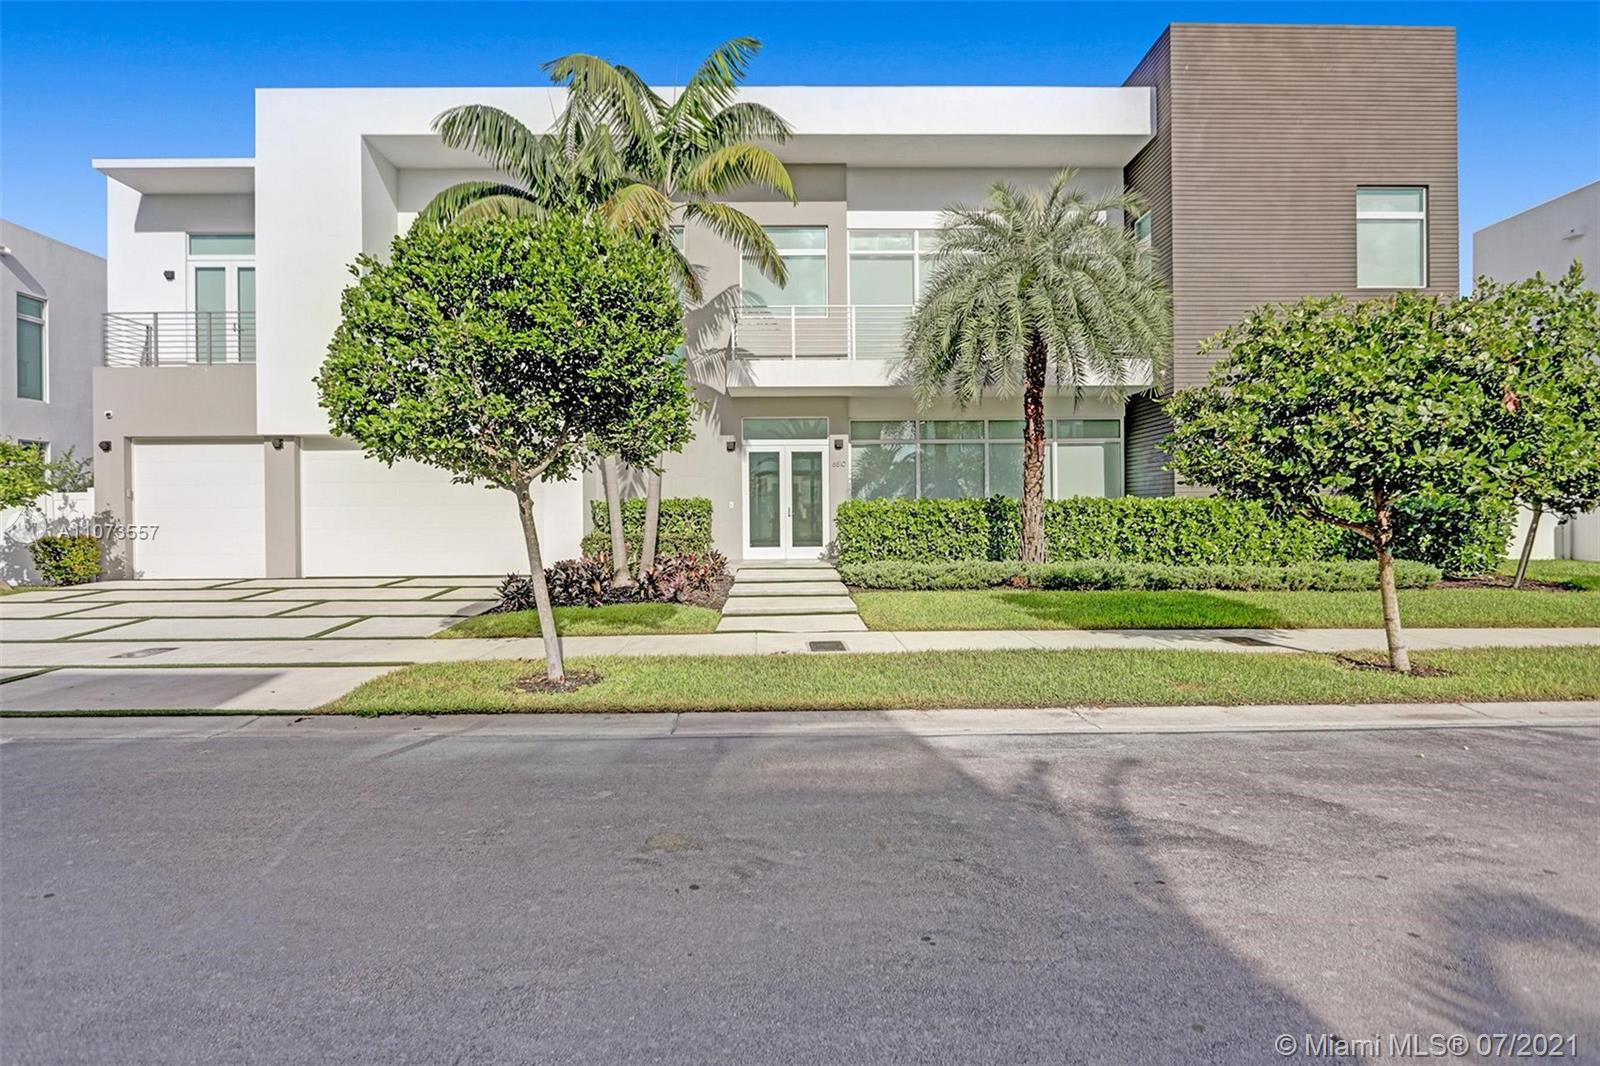 Stunning single family home in the most exclusive gated community in Doral, The Mansions. This property is the only available lake front with a doble lot. Beautiful 7 bedroom and 6,5 bathroom. With additional upgrdes, this smart home is fully automated including 14 cameras, sound system, media room screening wiring remote controlled lights & temperature , electric shades wiring 100% automatized smart home ipad controlled. Italian kitchen with top of the line appliances subzero & wolf. Impact windows. Guest house with full bath & 2 oversized roof terraces. Adjacent lake fornt outdoor BBQ kitchen overlooking the lake. 3 car garage , large driveway , lost of storage. Contemporary look and design. Only 56 luxurious homes in a gated community. Easy to show!